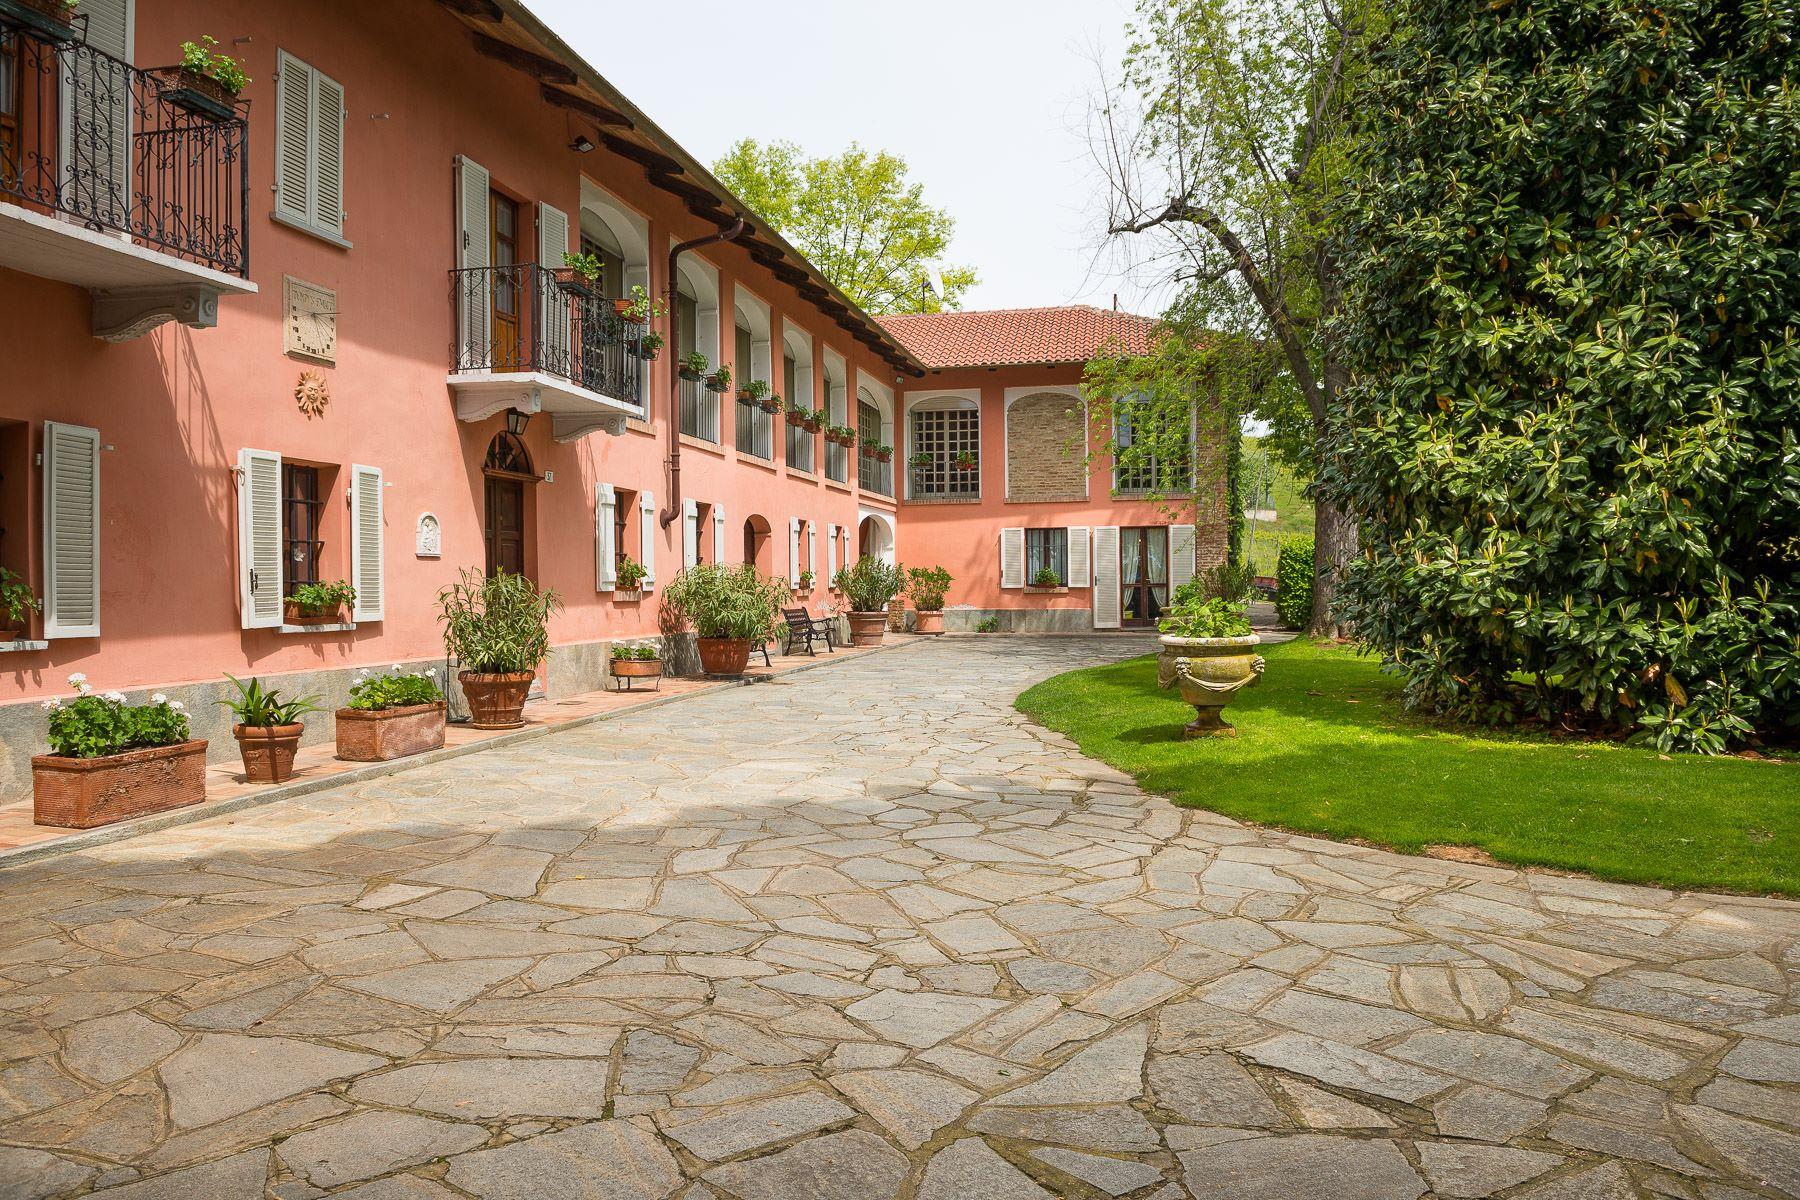 Single Family Home for Sale at Elegant farmhouse on the hills of Piedmont Frazione Nevissano Other Asti, Asti 14022 Italy